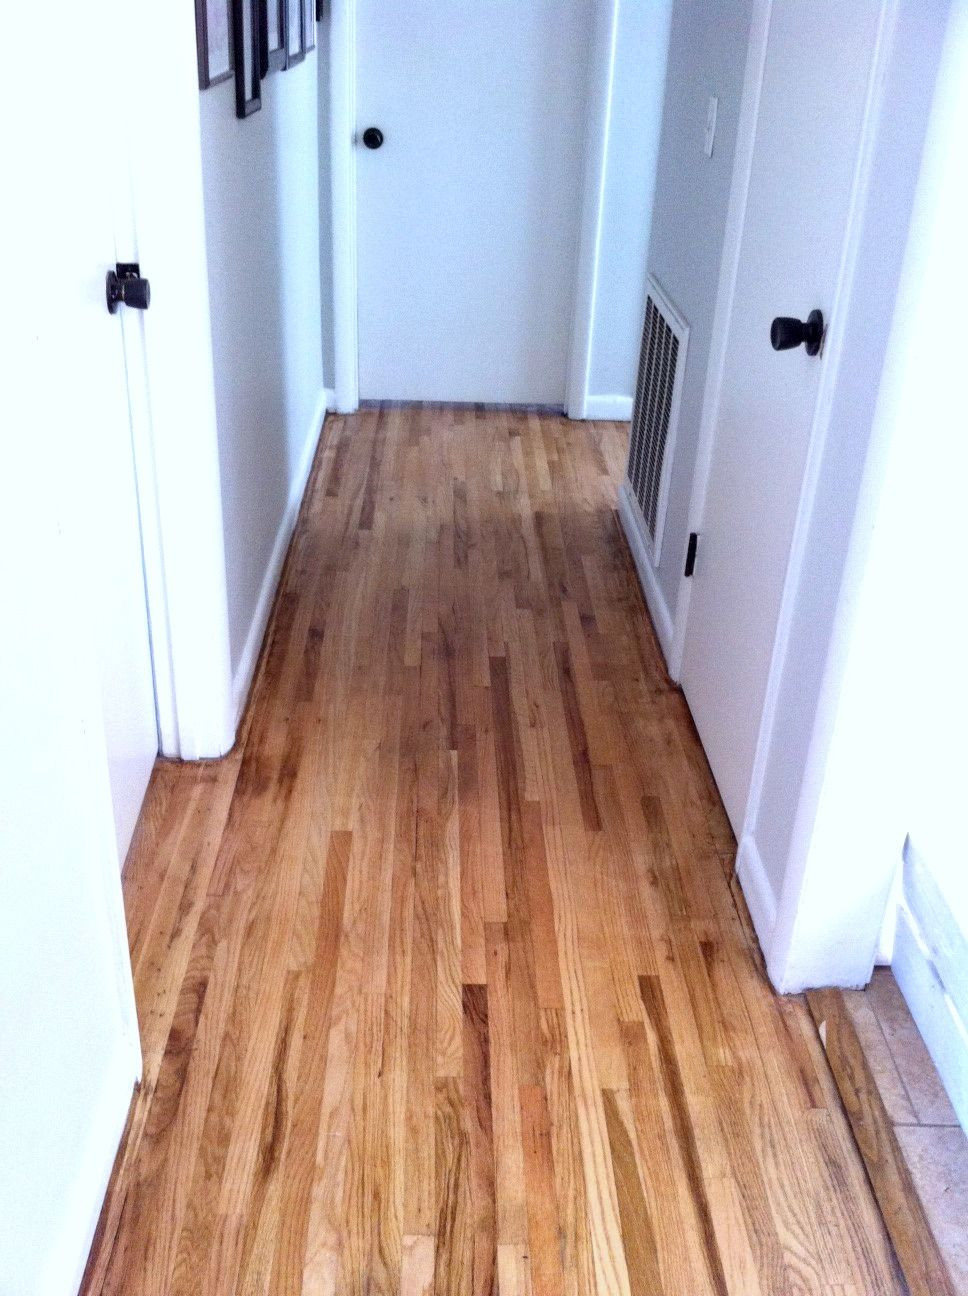 sanding hardwood floors yourself of this is what happens when you dont listen to the folks at lowes pertaining to refinishing hardwood floors includes price breakdown mom in music city i didnt stain my floors i think the natural wood goes well with our house